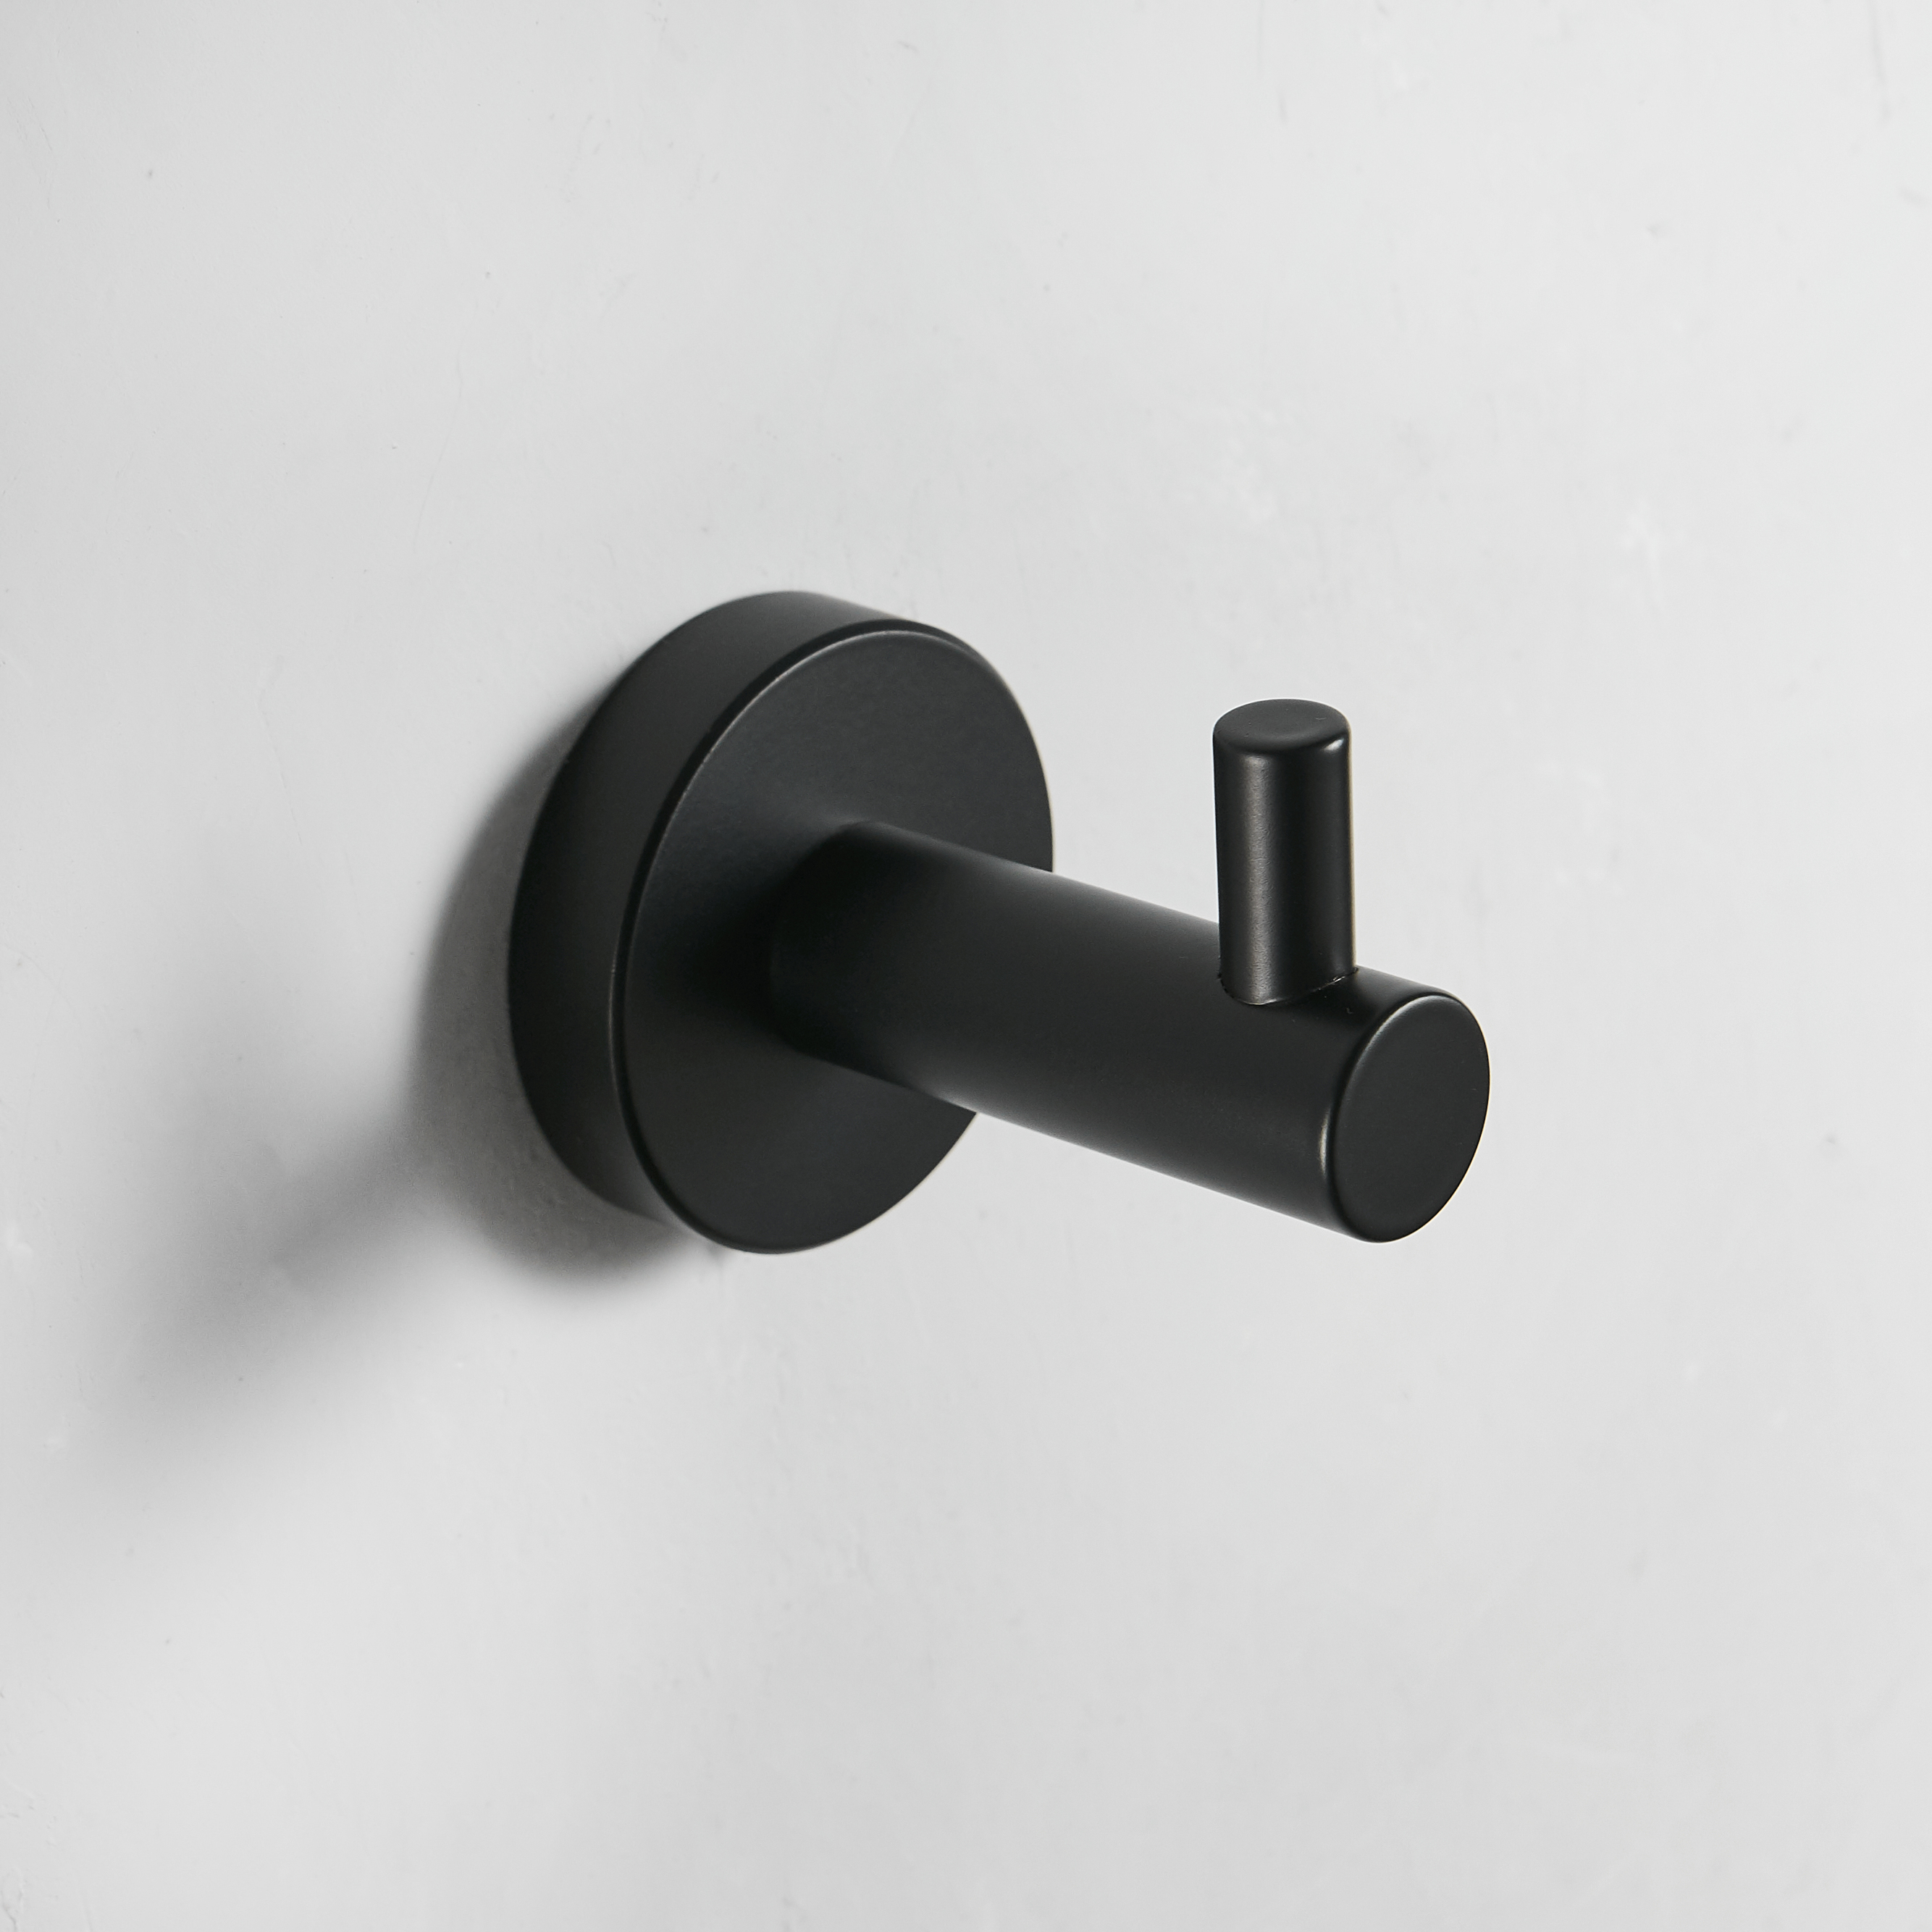 Robe Hooks Black Hook On The Wall Bathroom Hangings Towel Rack European Style Clothes Hook Bedroom Door Hooks